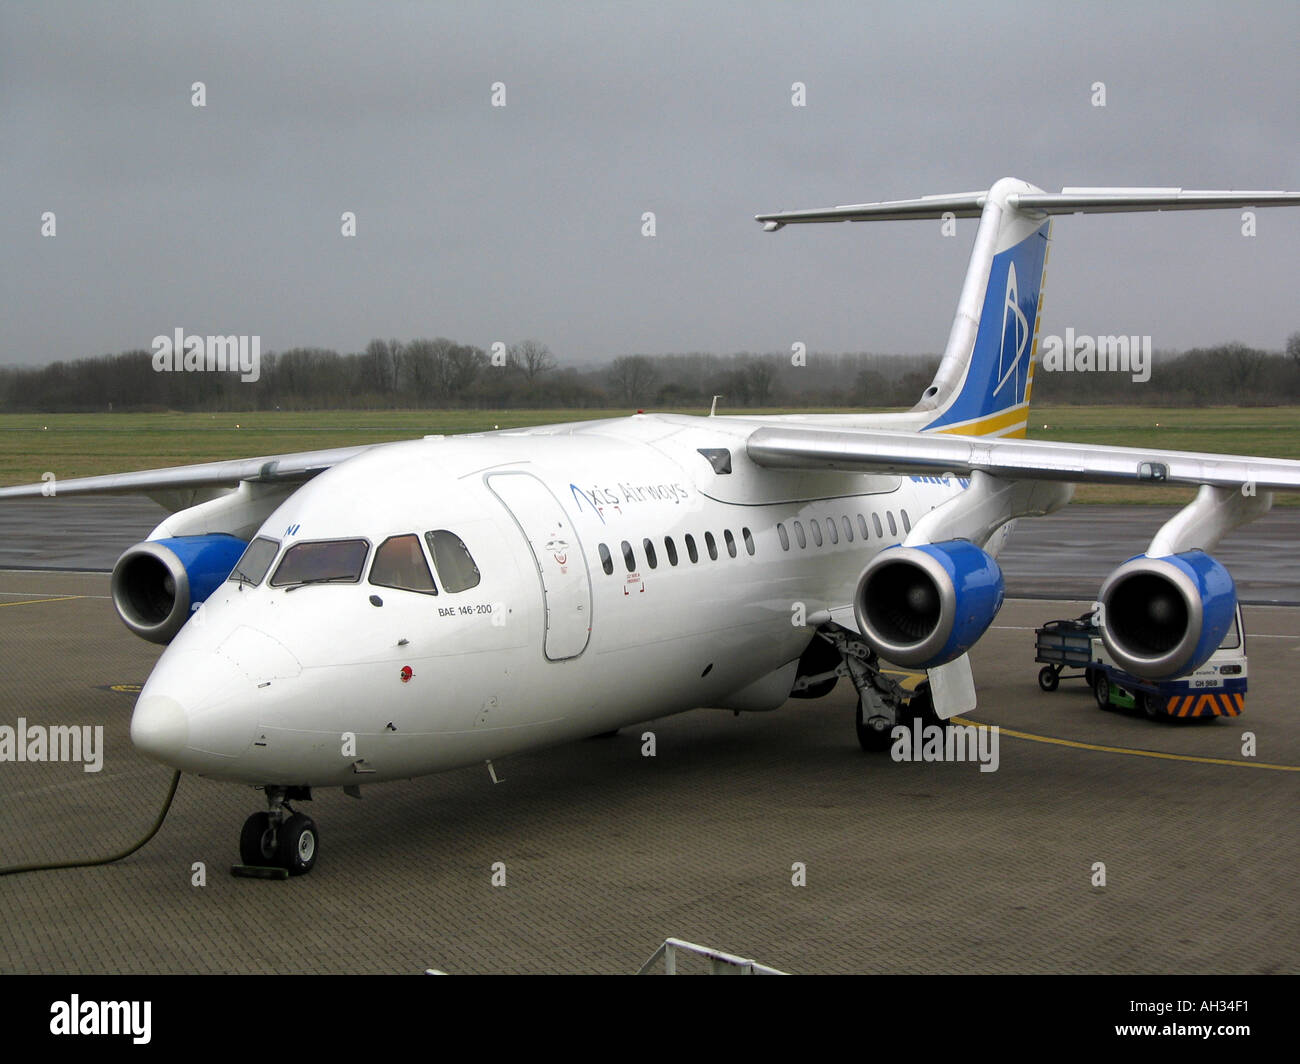 BAc146 200 4 Engined Jet AXIS Airways Based in Marseilles France FGLNI On Southampton Airport Ramp - Stock Image